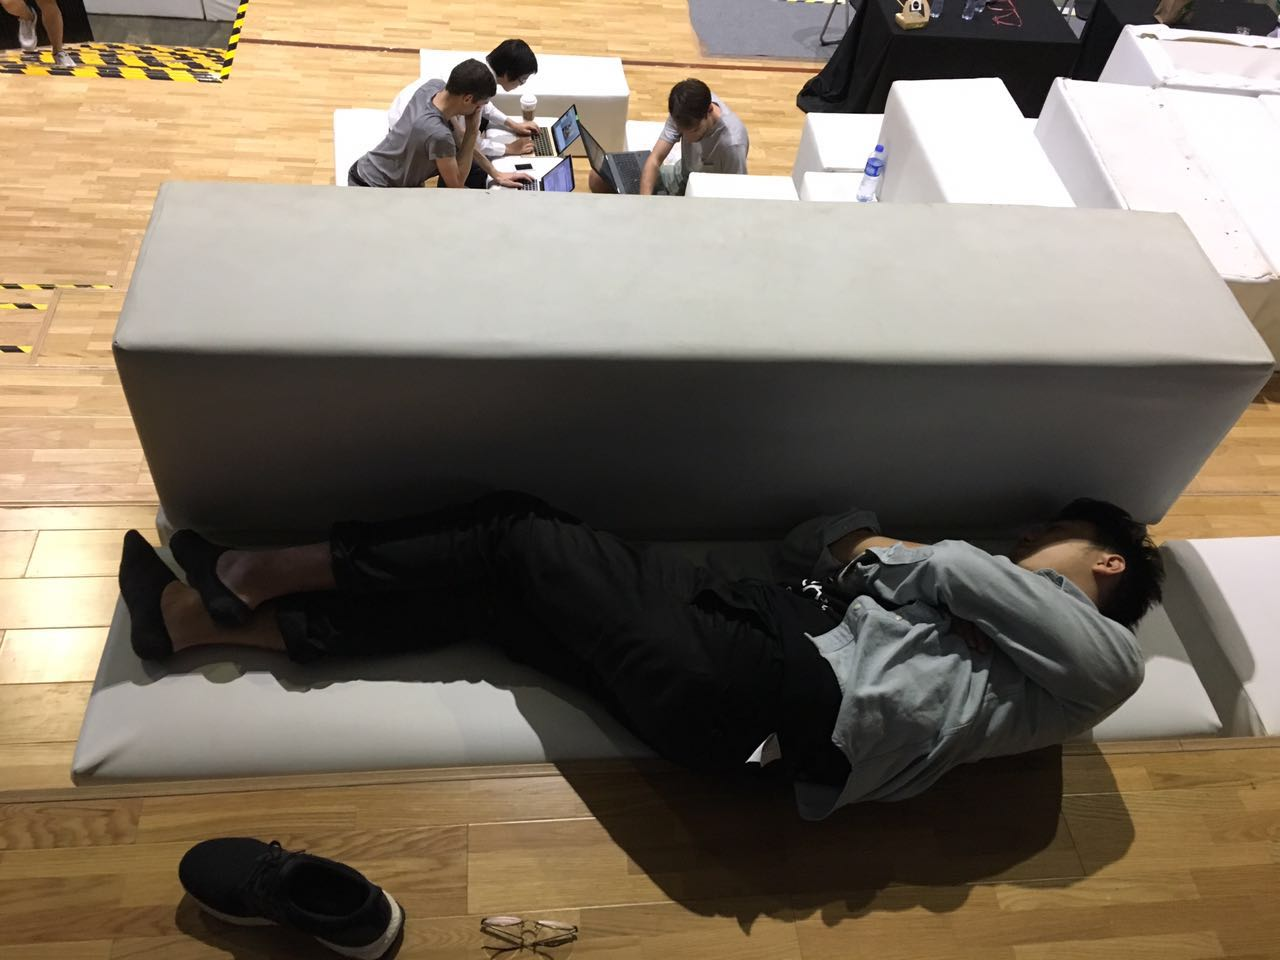 A participant catching a snooze (Image credit: TechNode)